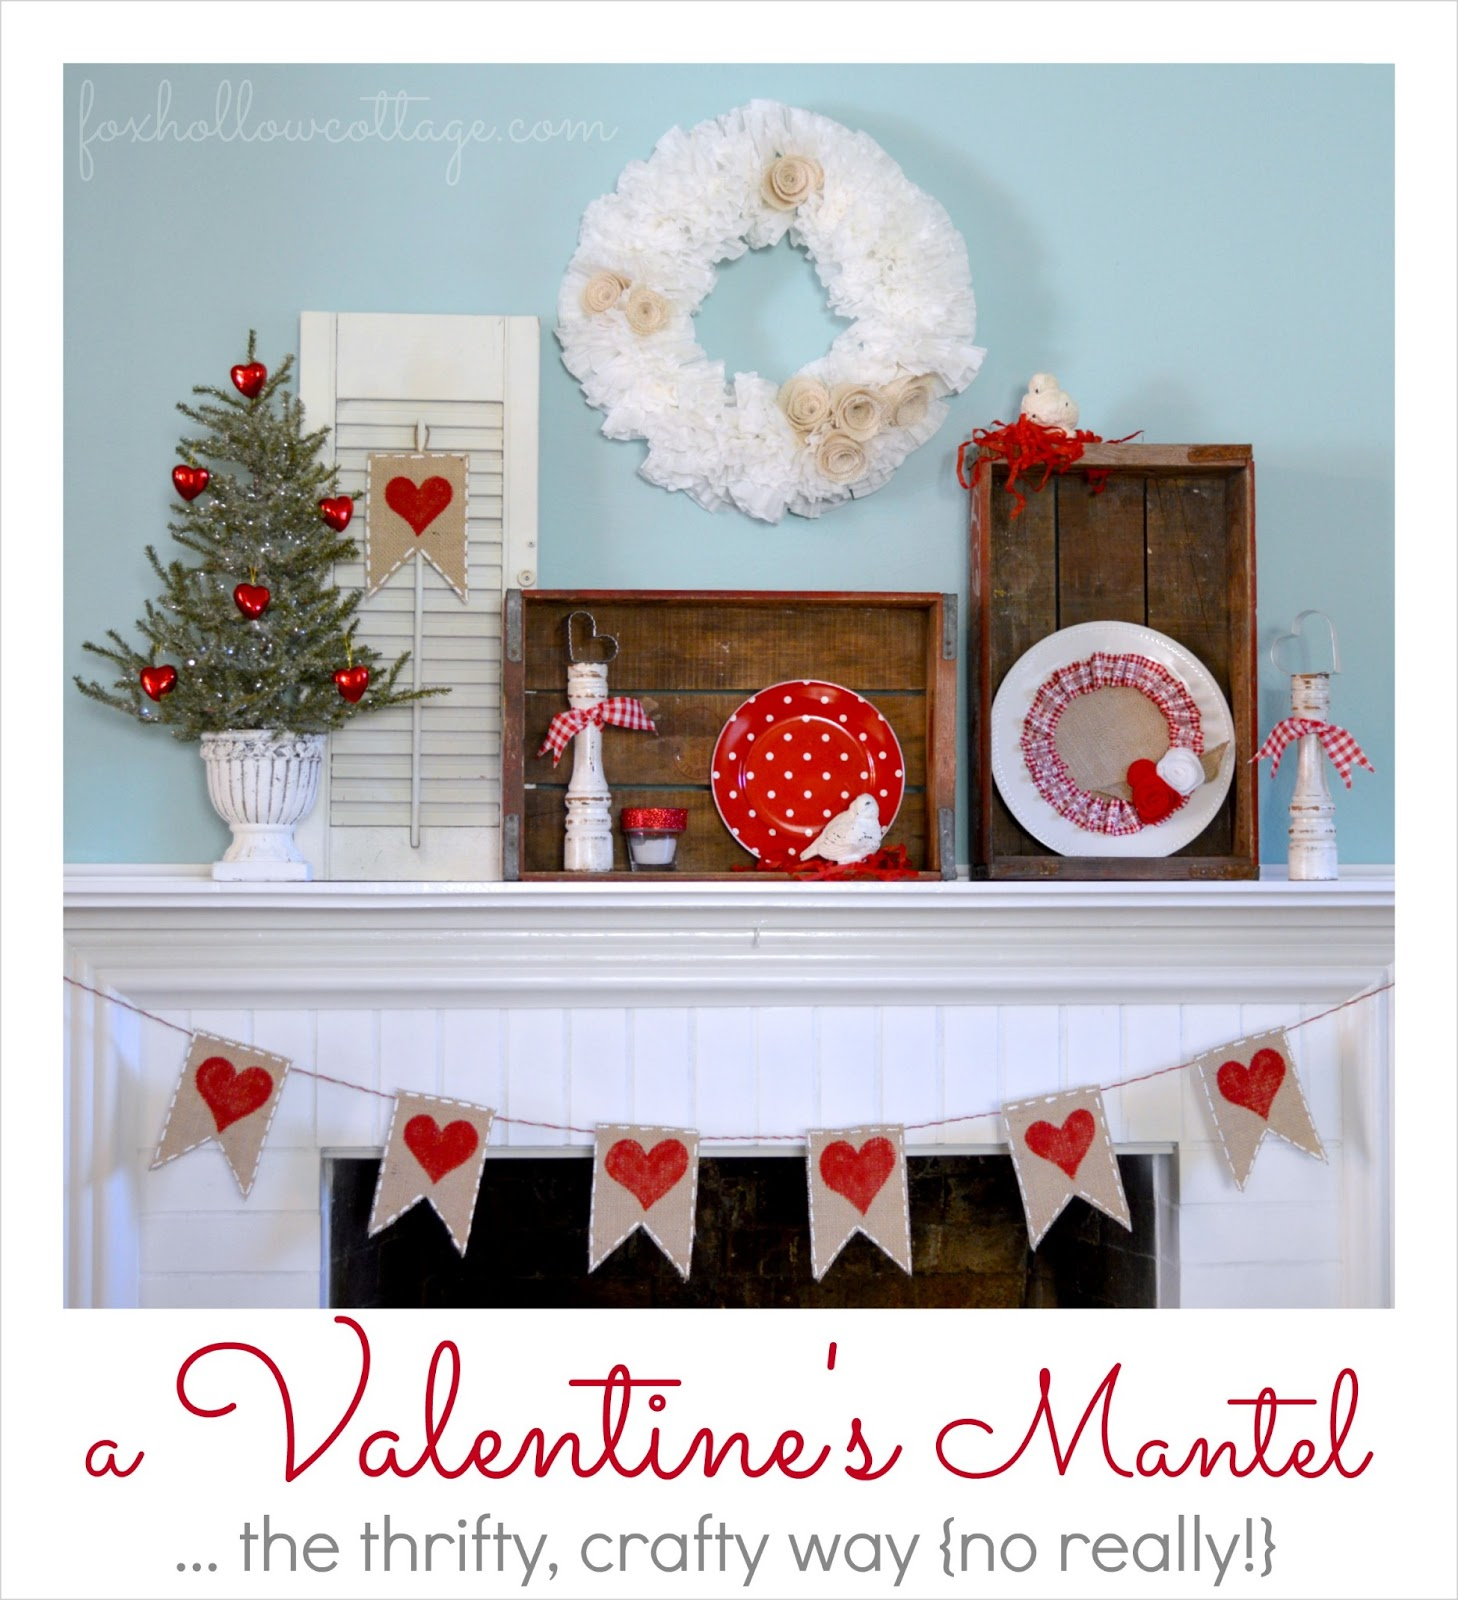 Valentine s day mantel the thrifty crafty way fox hollow